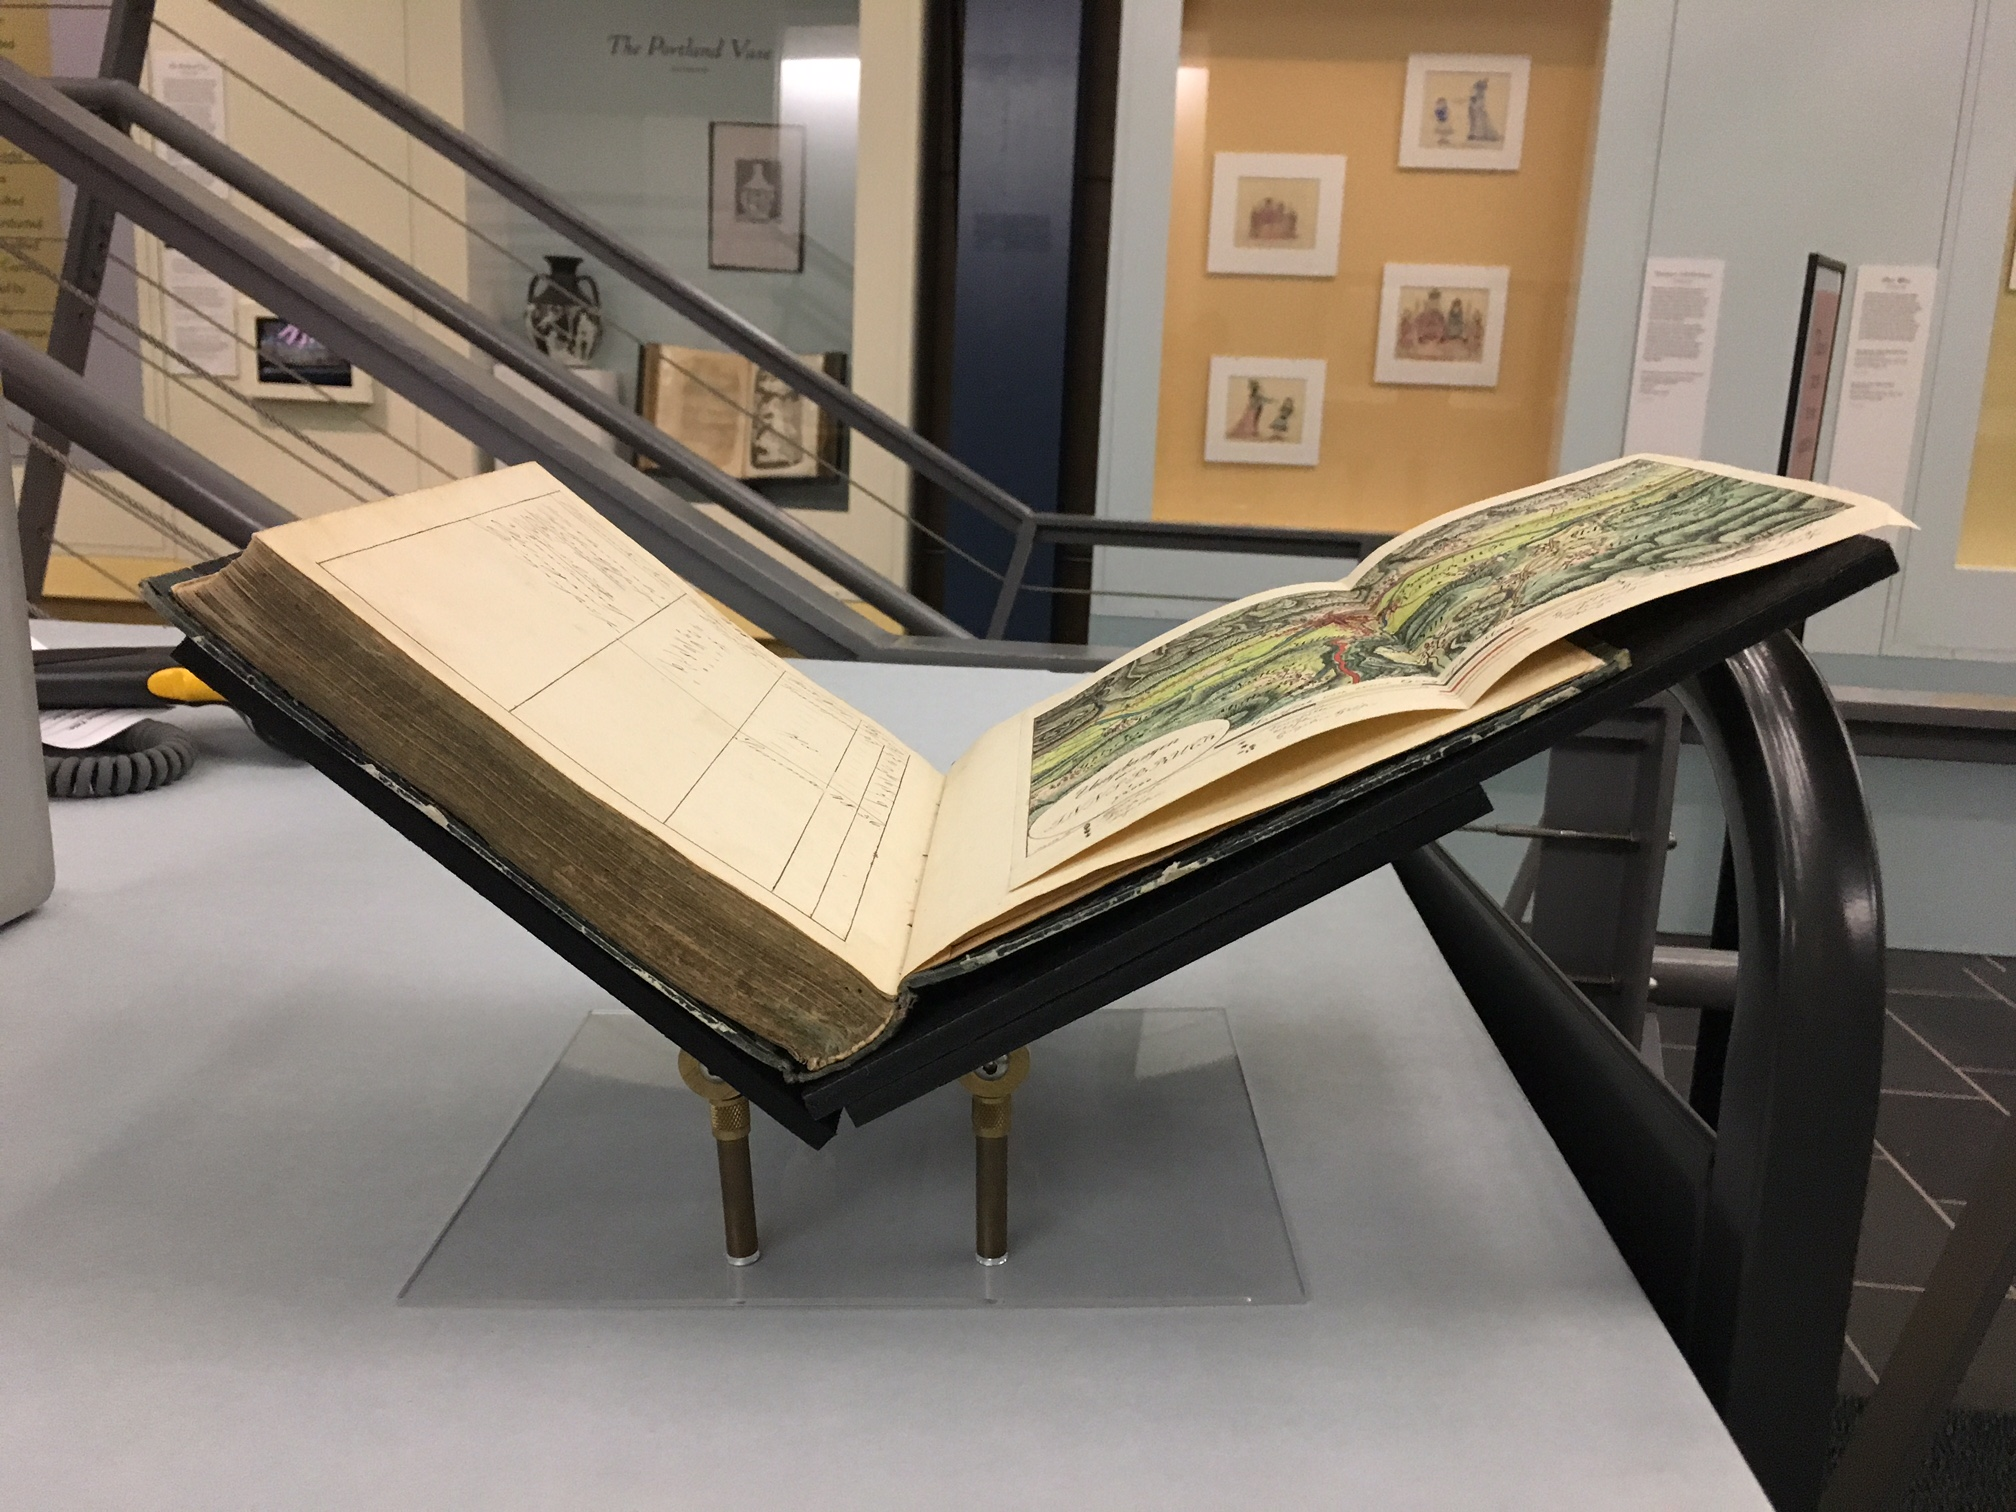 An example of a book resting on a custom book mount.